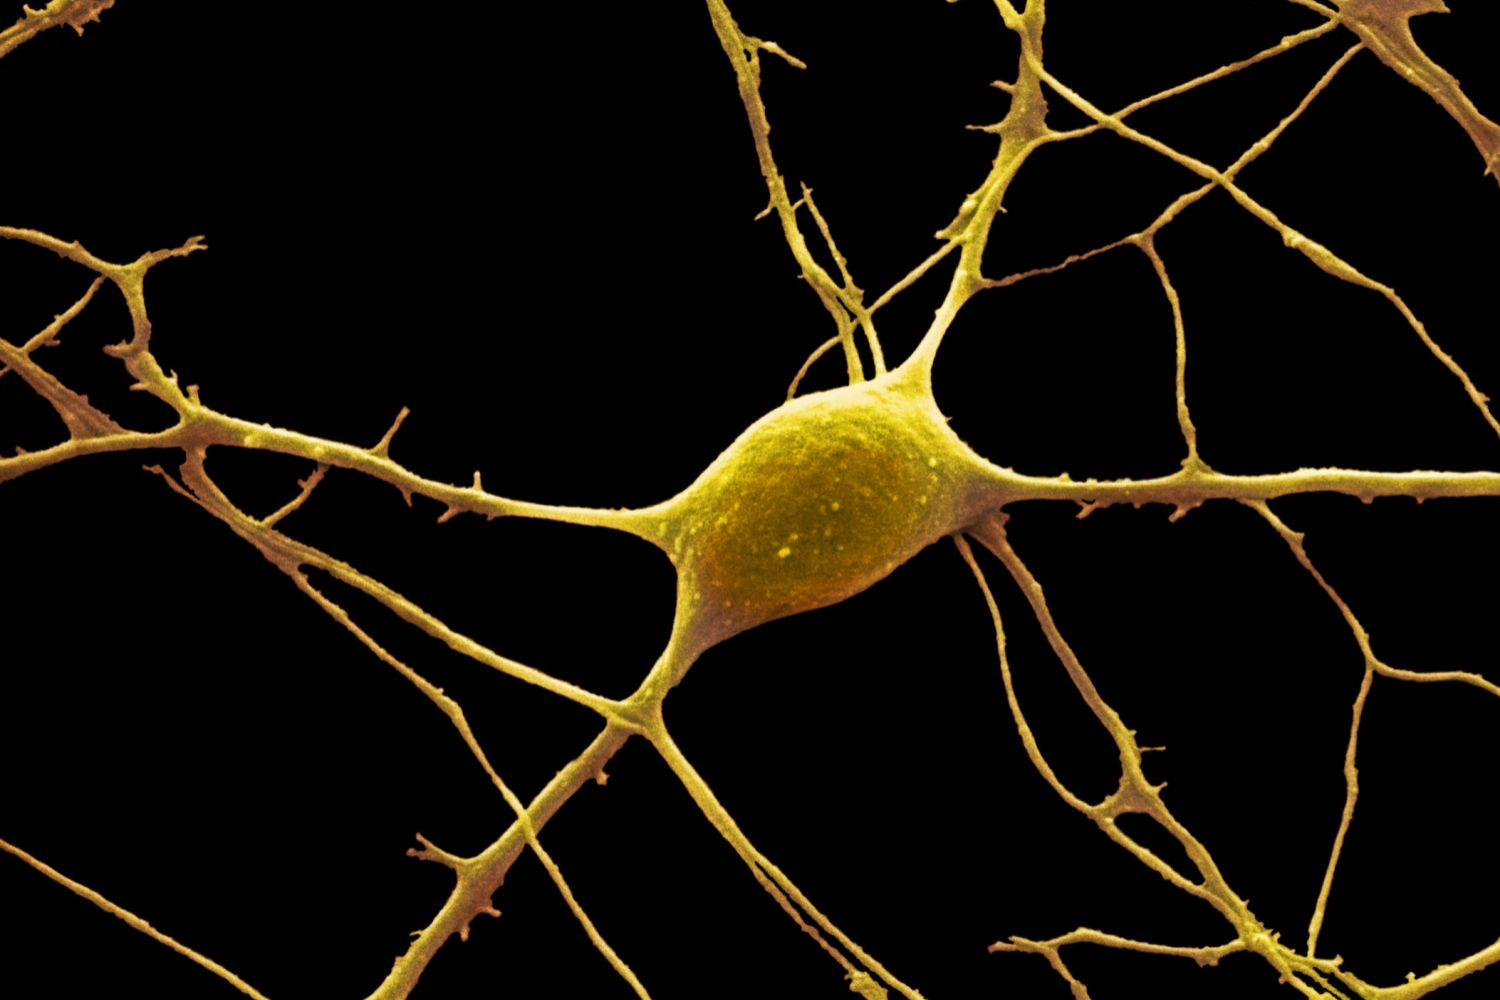 neurons nervous system and cell body These cells pass signals from the outside of your body, such as touch, along to the central nervous system bipolar neurons have one axon and only one dendrite branch they pass signals from one neuron to the next inside the central nervous system.